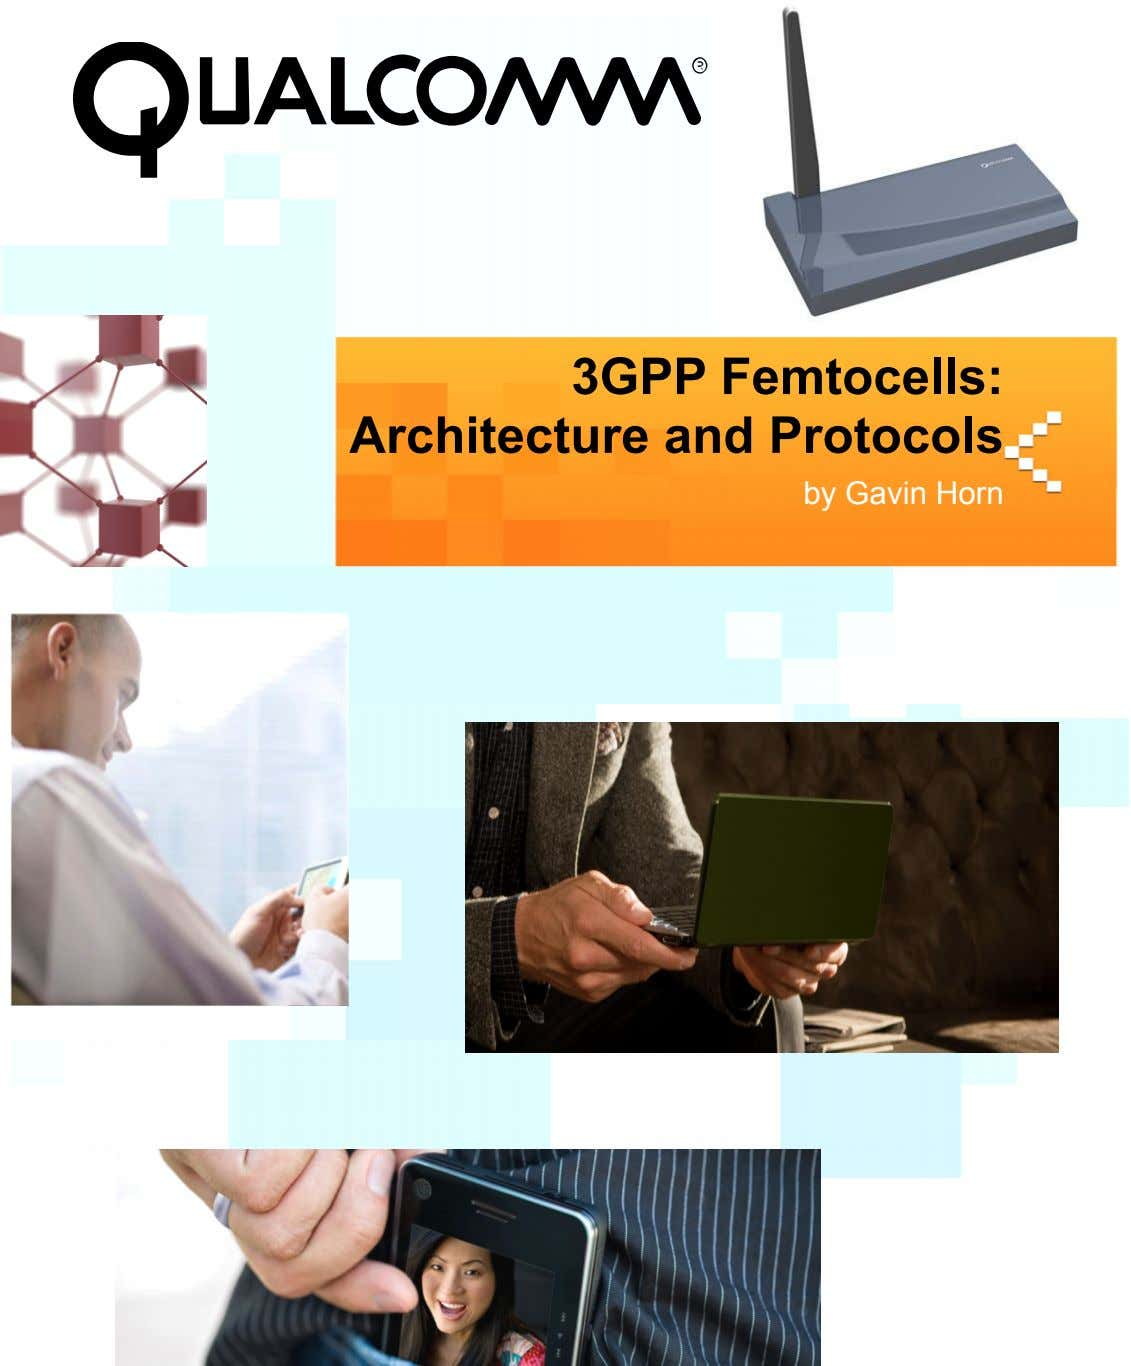 3GPP Femtocells: Architecture and Protocols by Gavin Horn